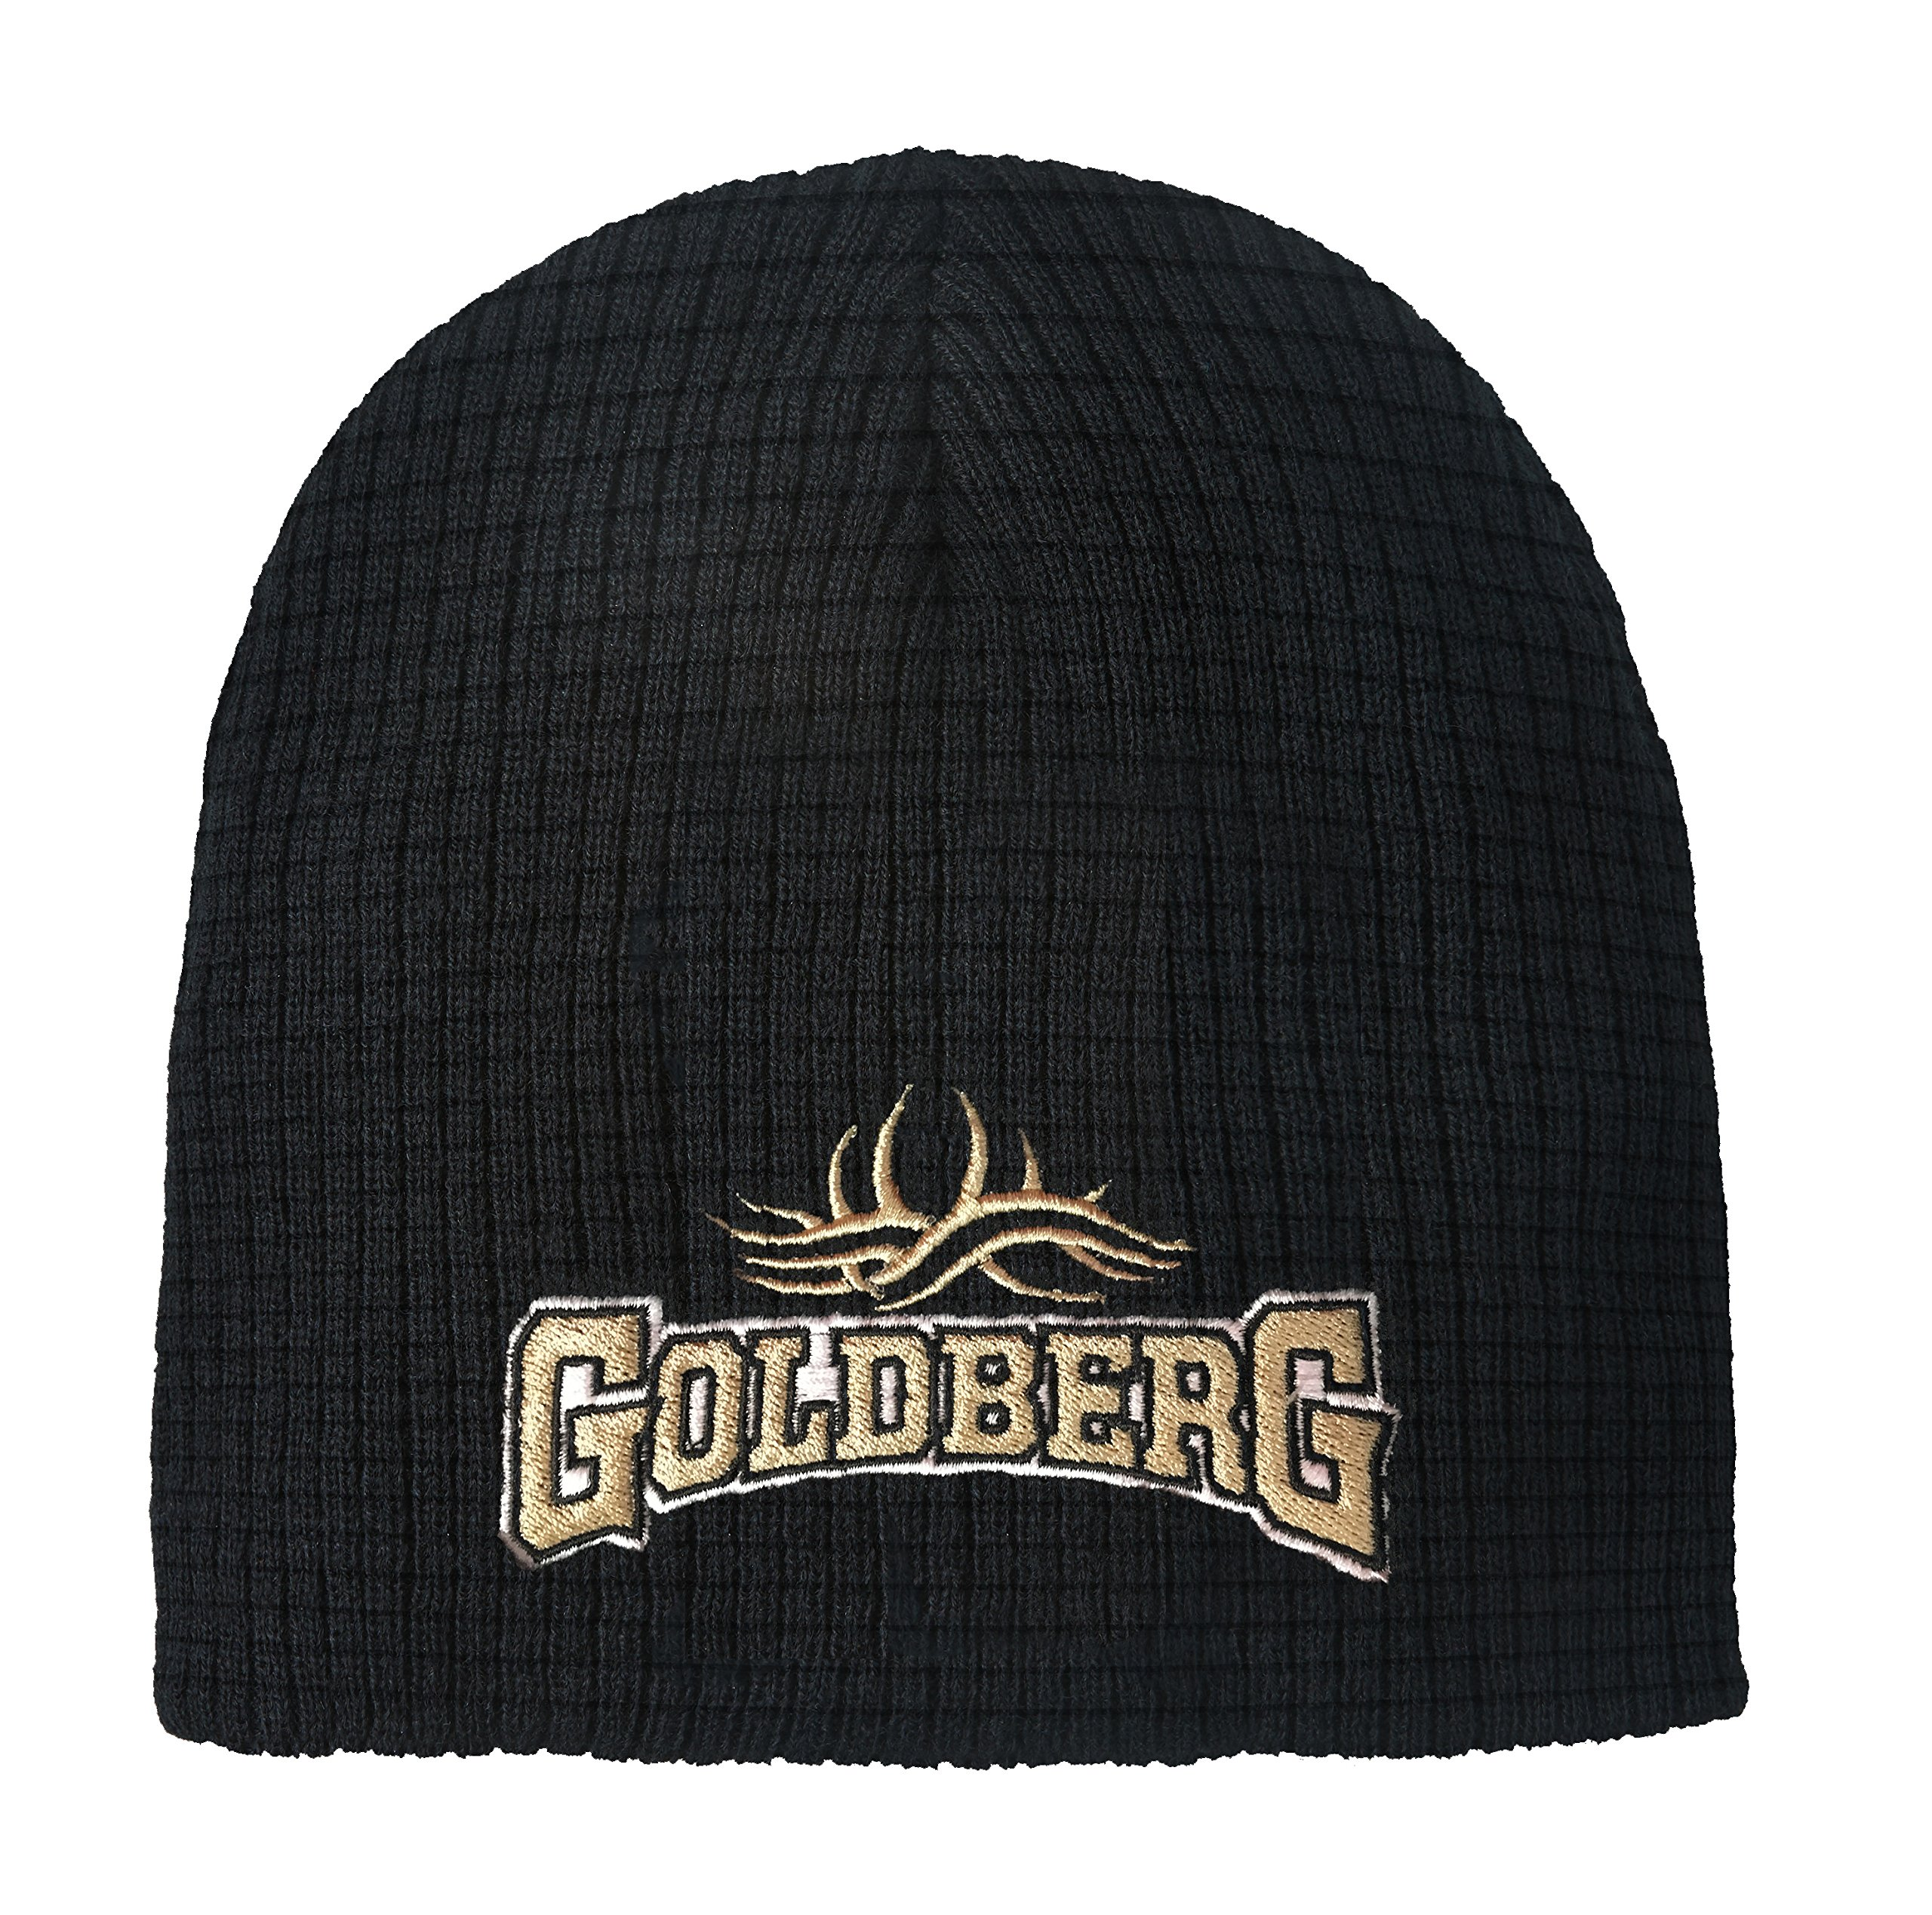 Bill Goldberg WWE Authentic Knit Beanie Cap Hat by WWE Authentic